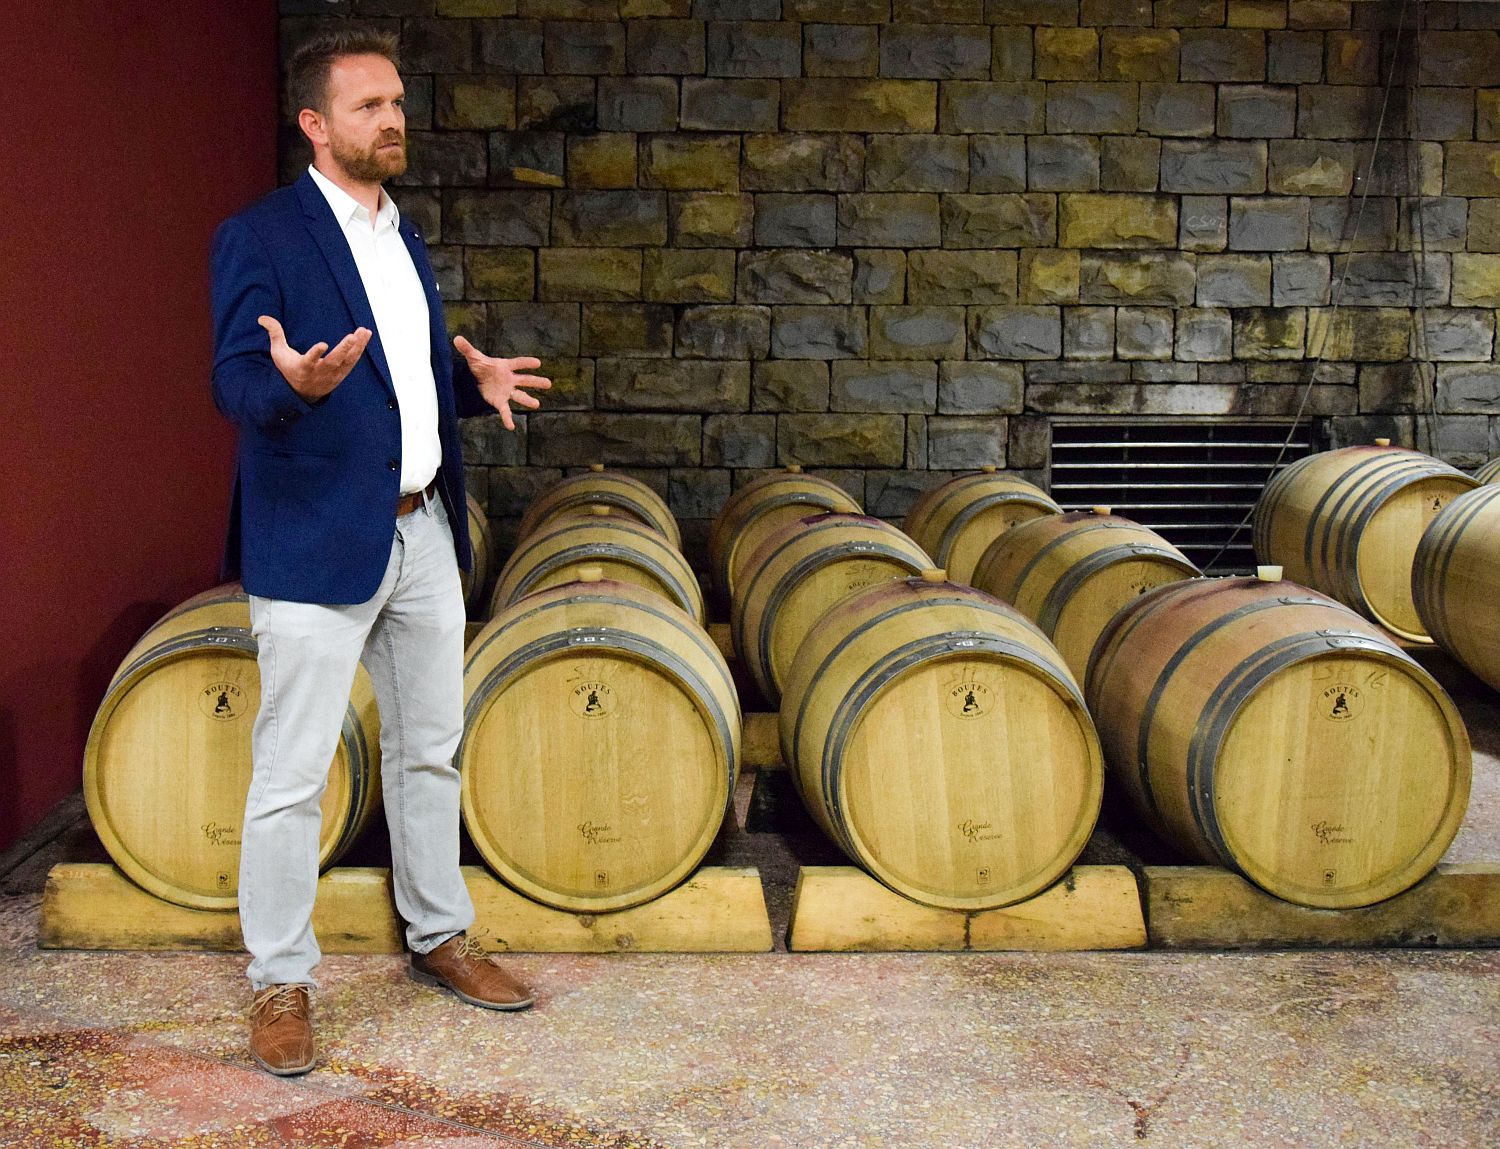 Niko of Santomas Winery explains about the wines